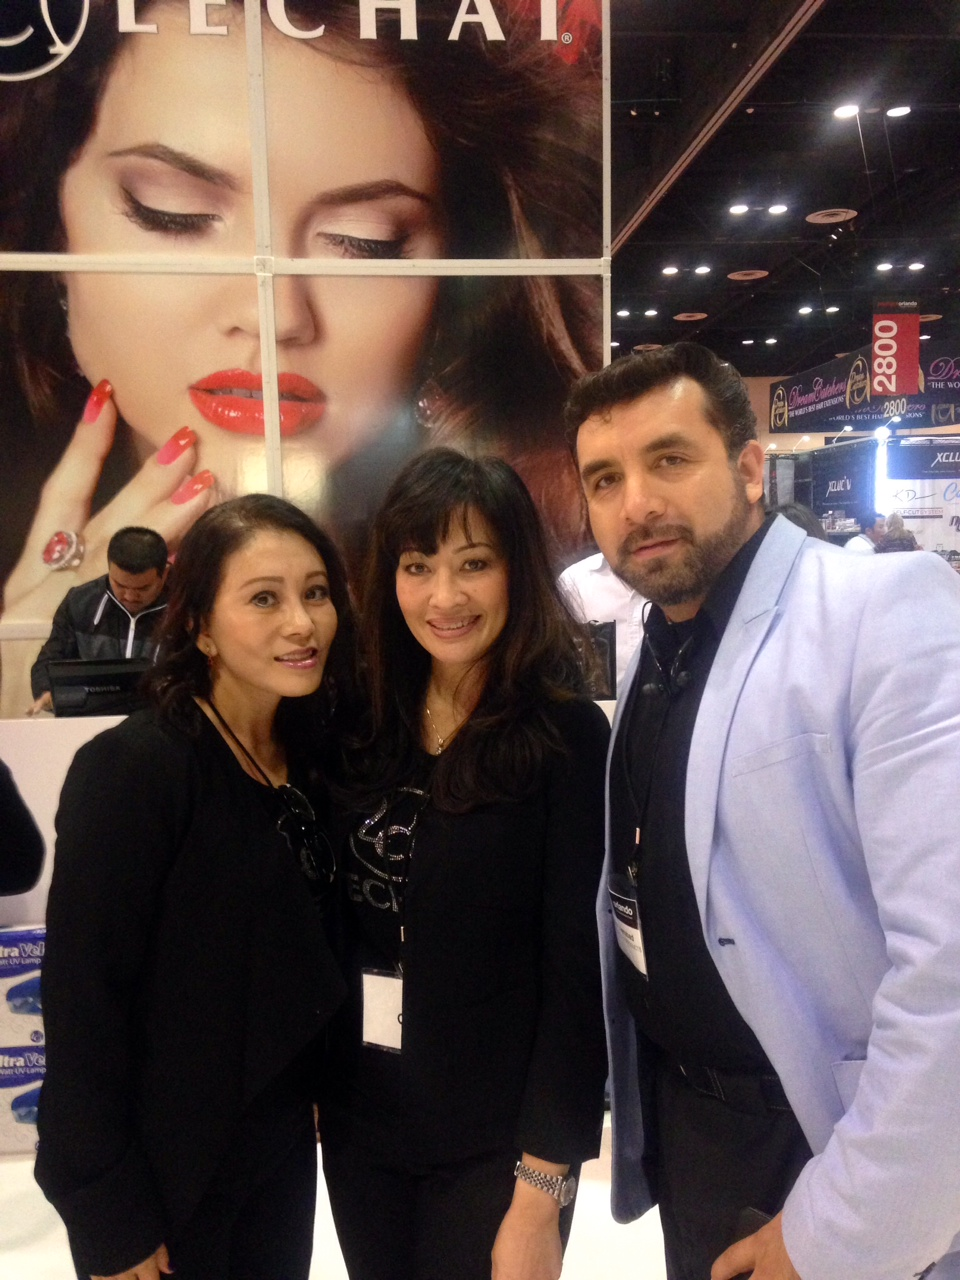 <p>Hanna Do, Jackie Truong, and Daniel Buenabad, LeChat</p>